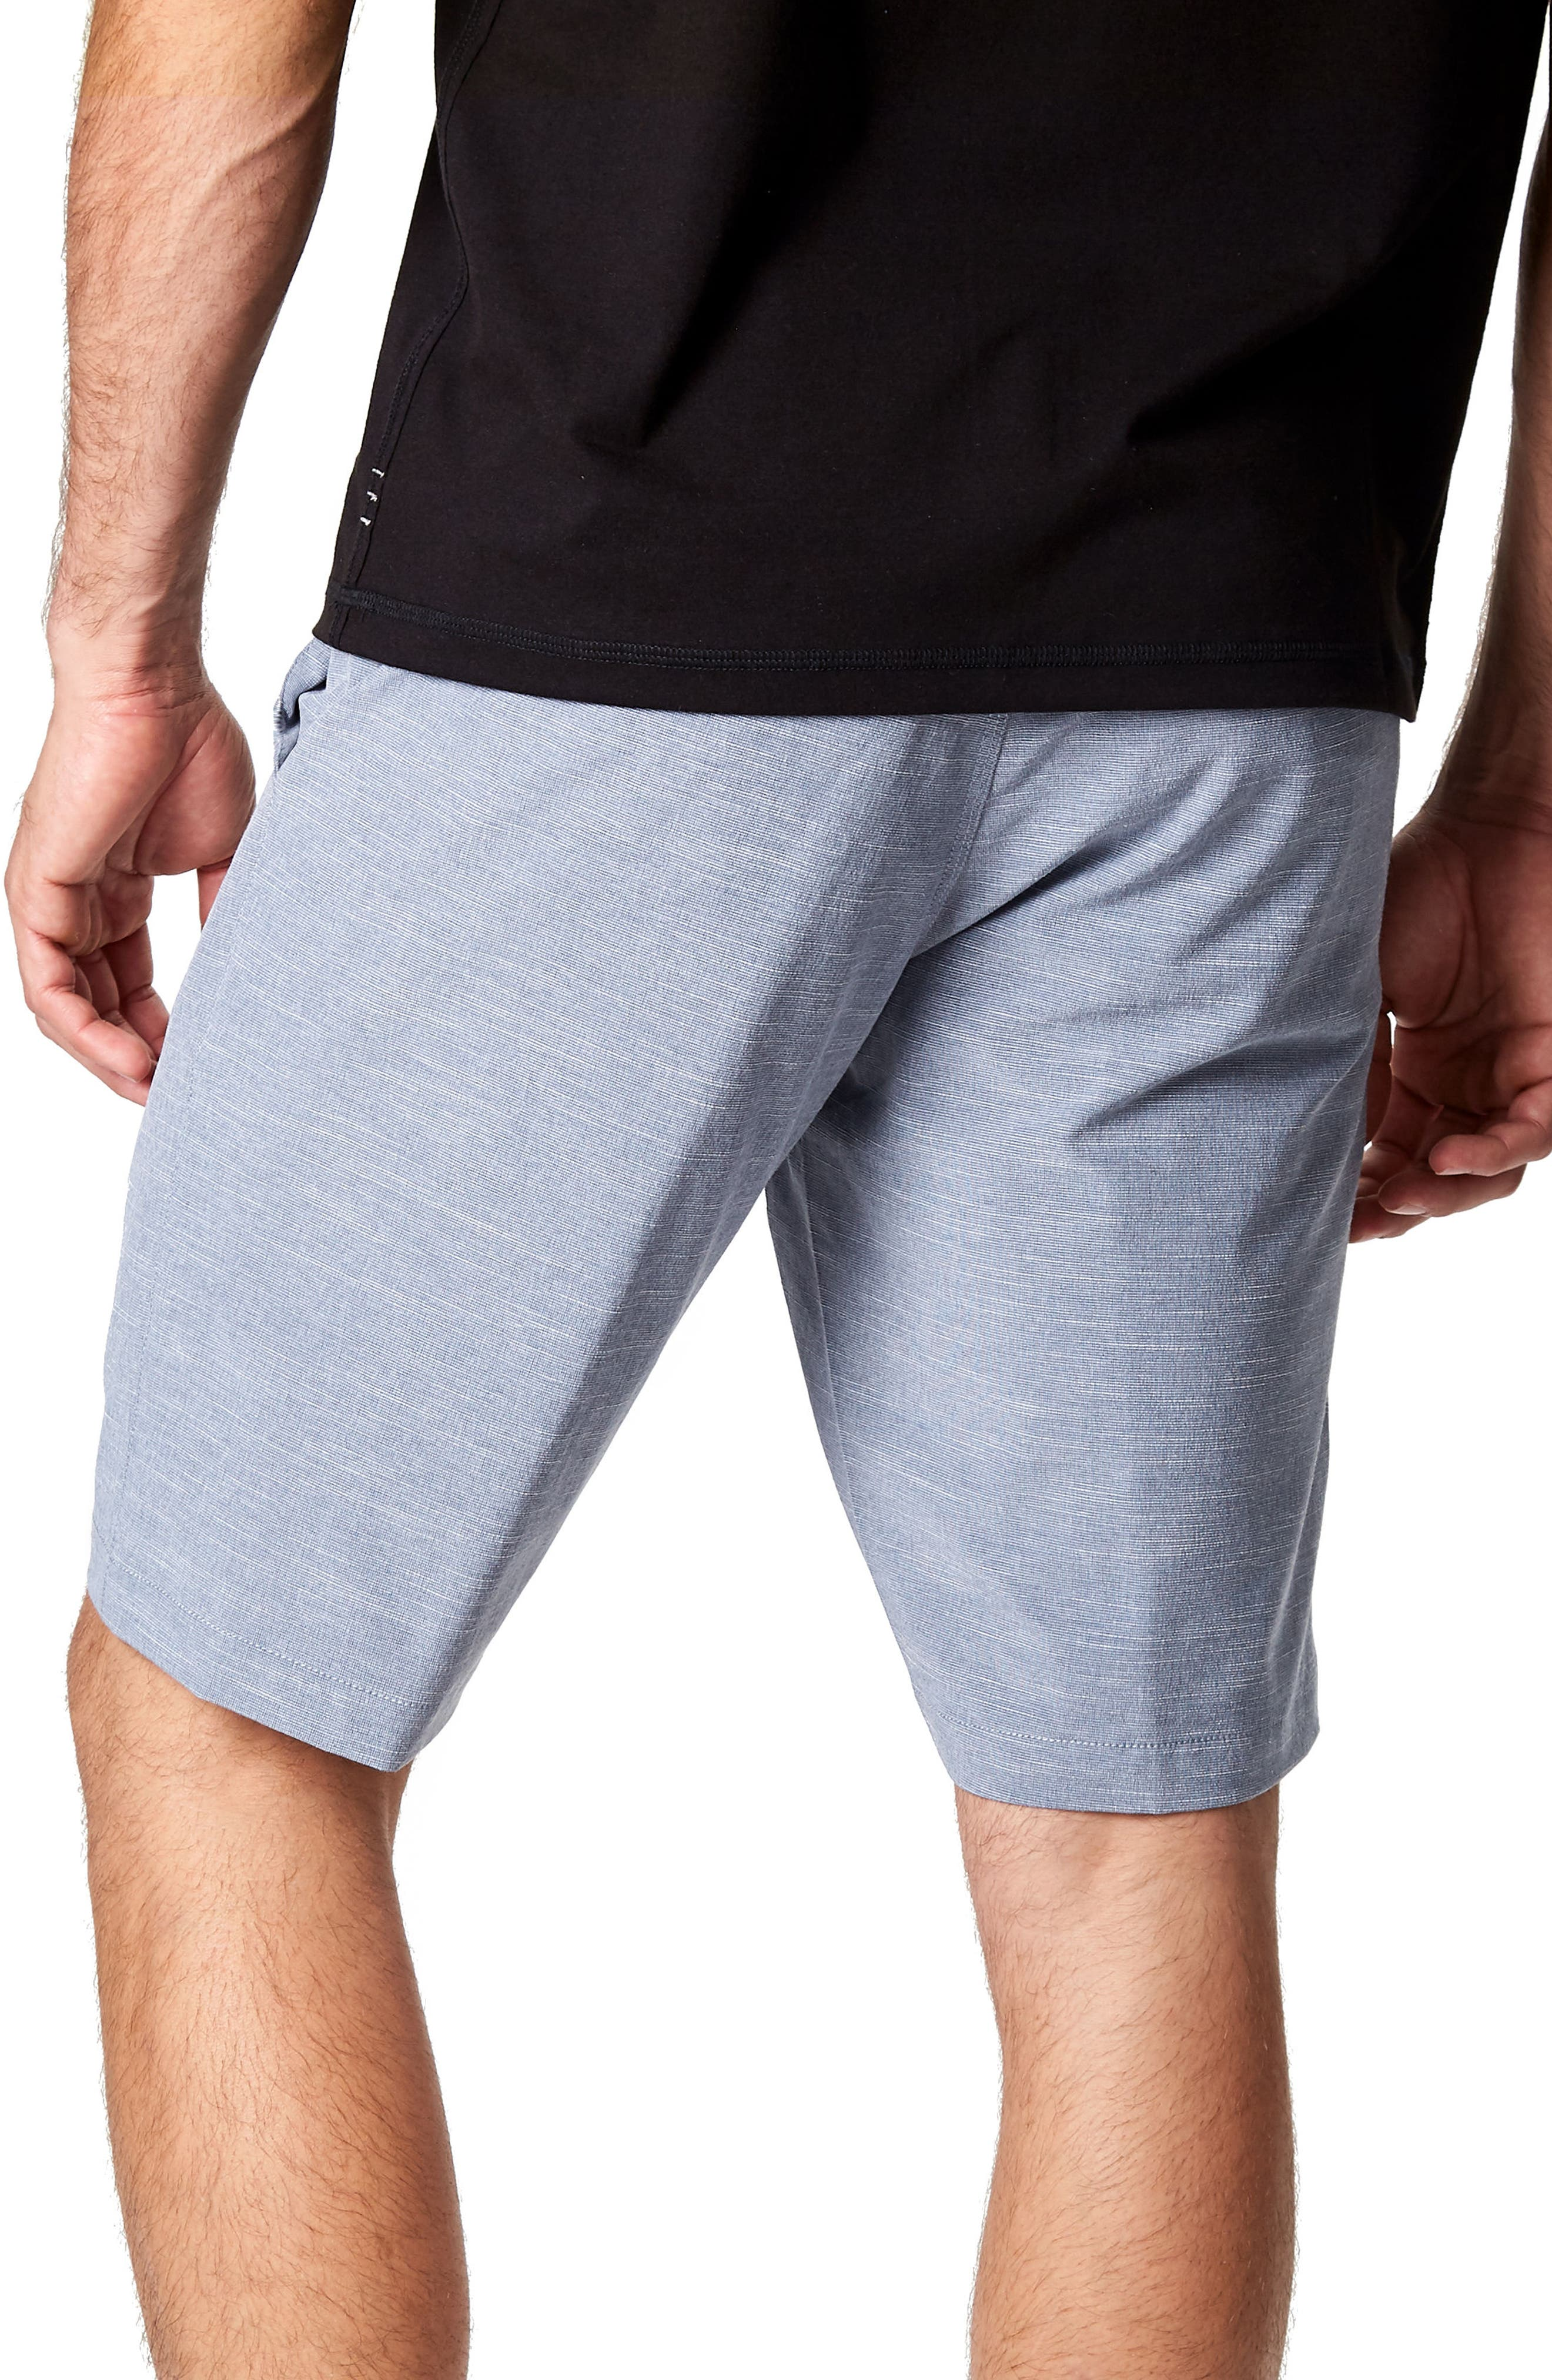 Existence Stretch Shorts,                             Alternate thumbnail 2, color,                             Slate